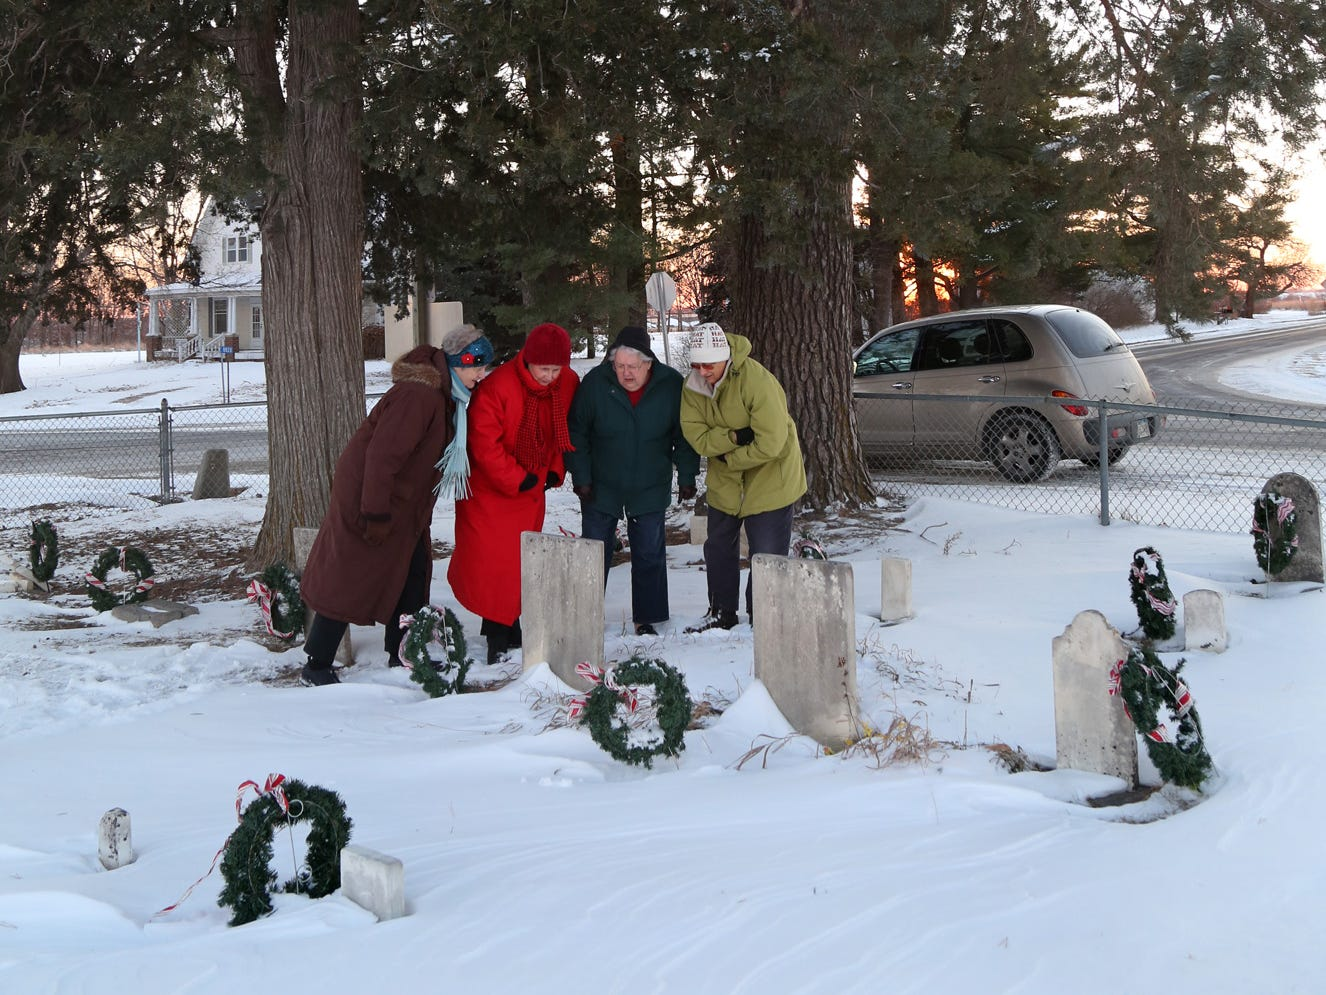 From 2013: Members of the Huston's Plot chapter of The Questers care for the tiny Huston cemetery, located in the middle of Mills Civic Parkway. Questers members from left, Sue Jones, Jane Herbold, Lola Suckow and Flo Dietz visit the cemetery.